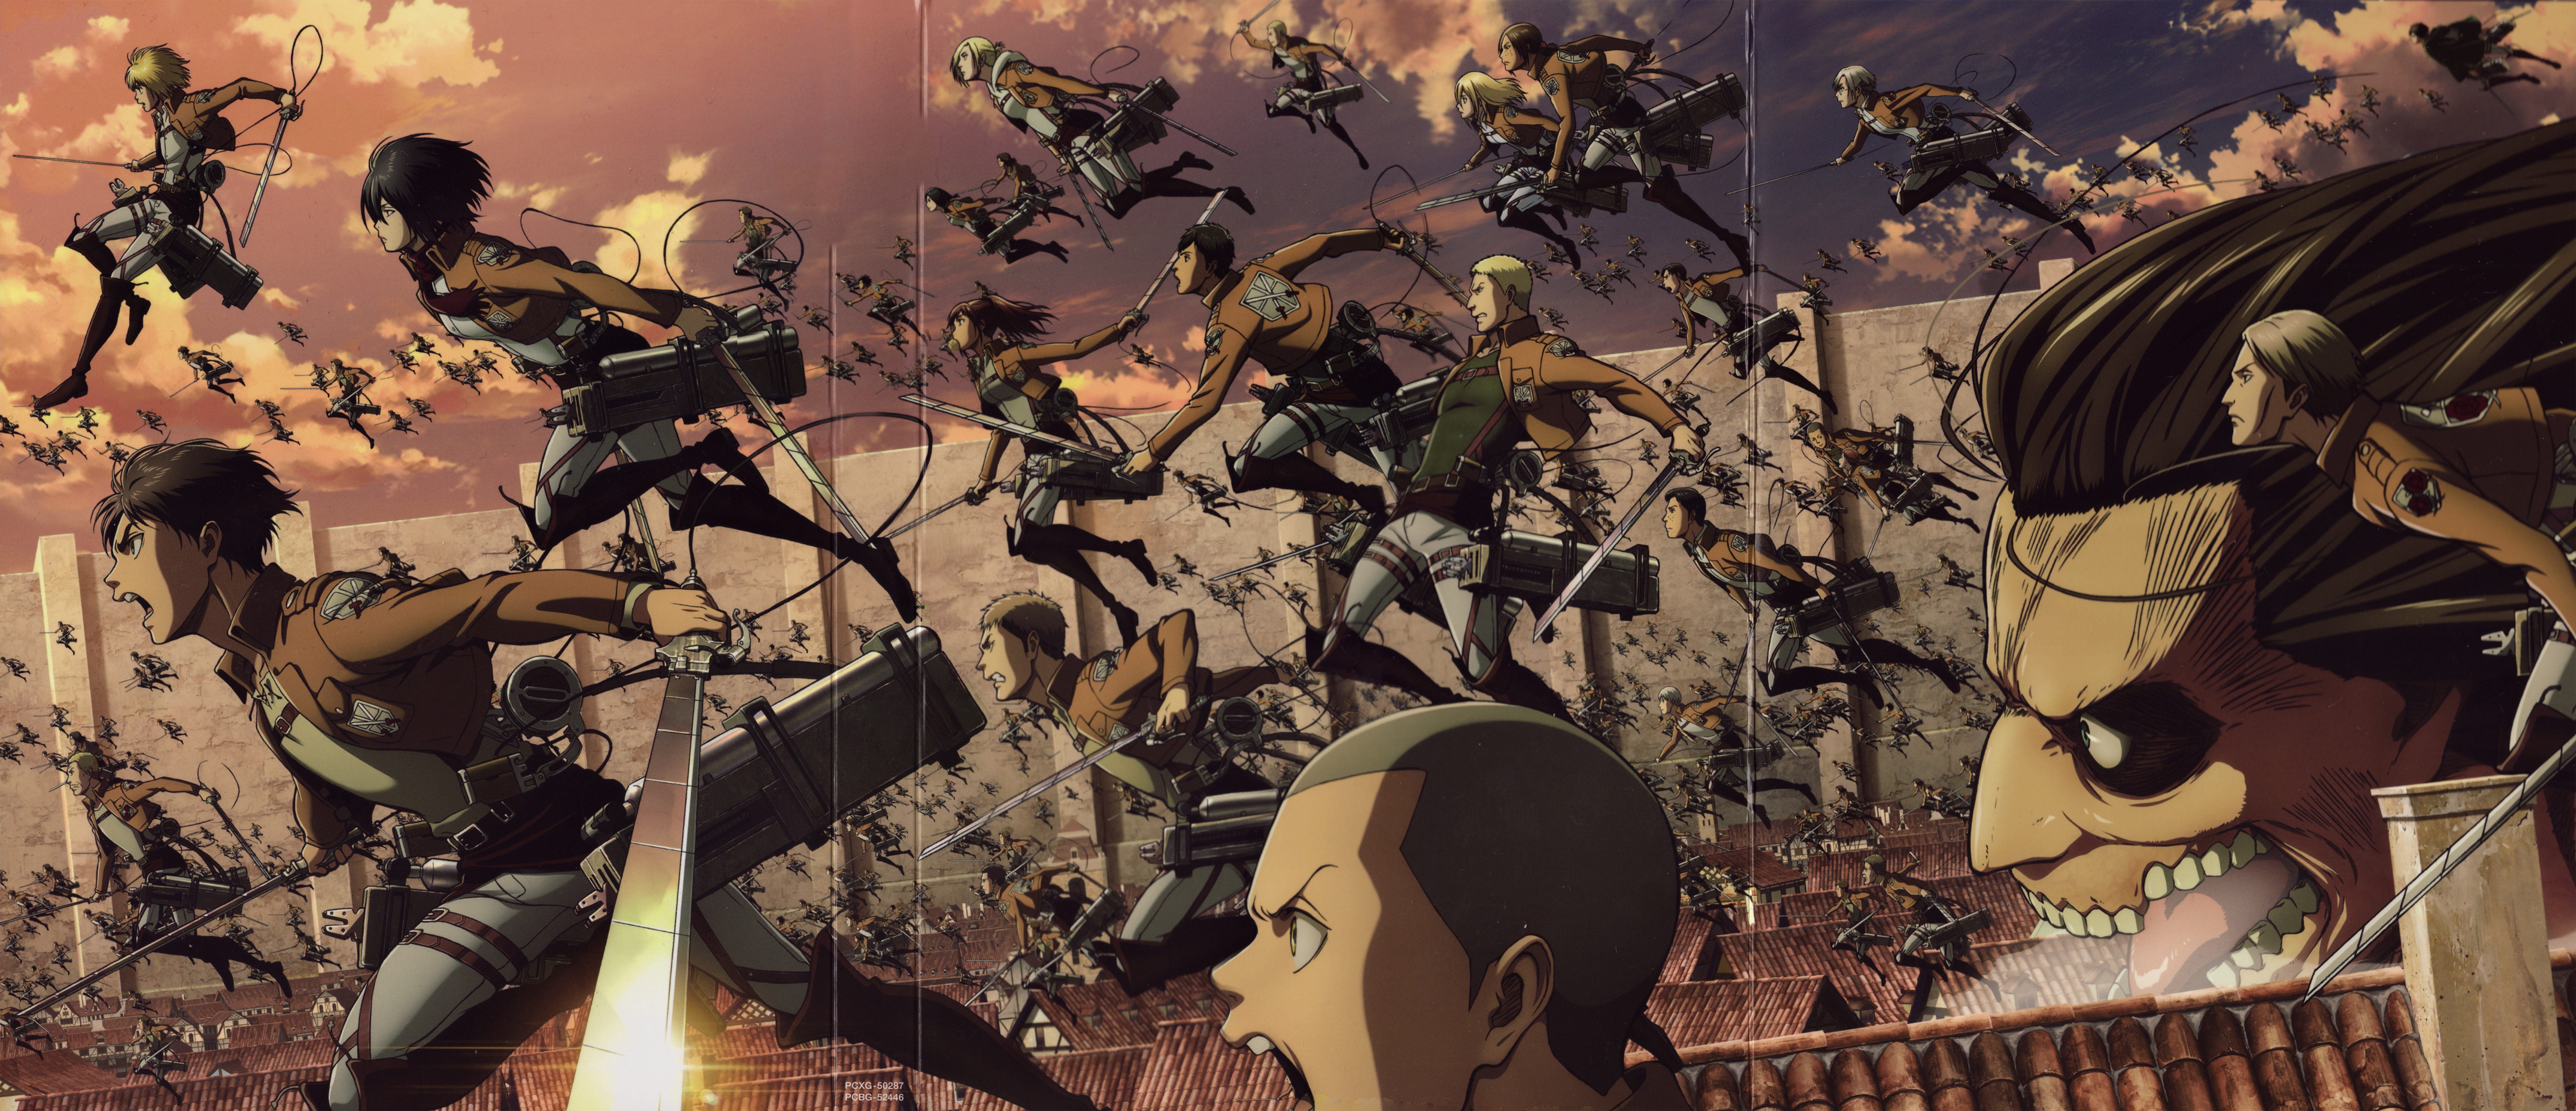 Attack On Titan Shingeki No Kyojin Epic Wallpaper By Corphish2 On Deviantart